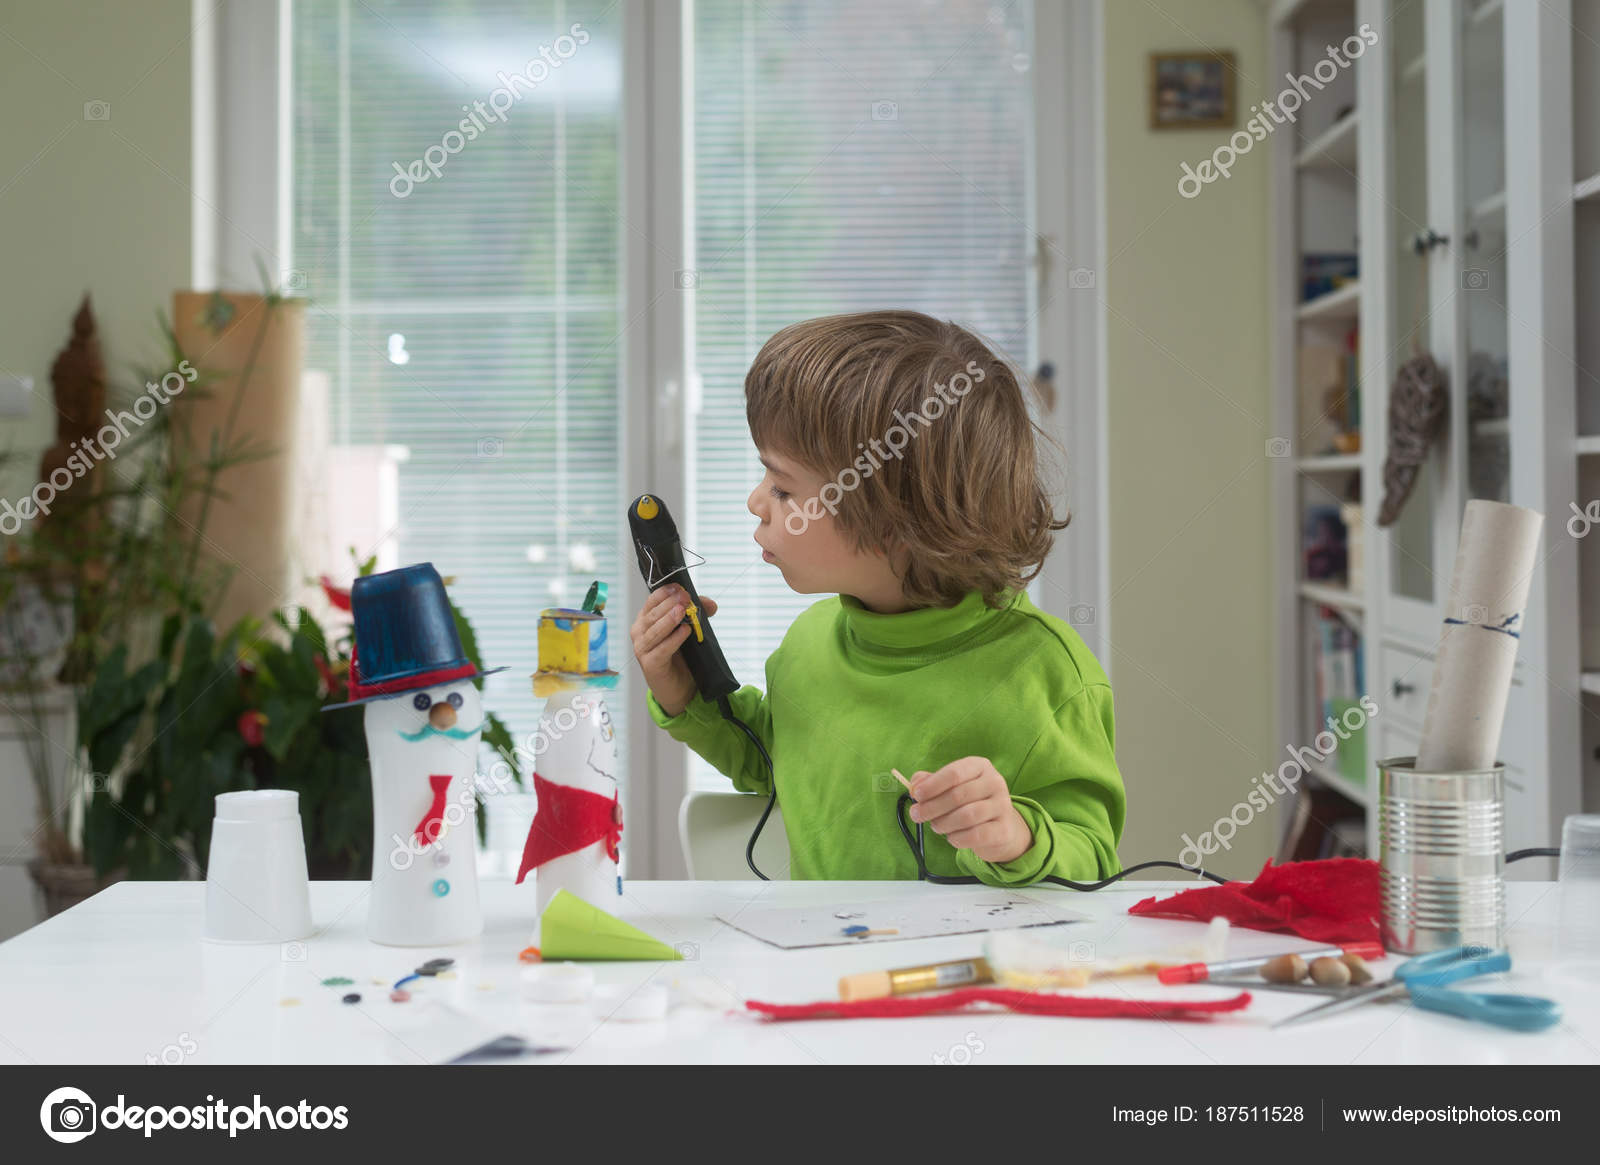 Little boy being creative making homemade yourself toys out yogurt little boy being creative making homemade do it yourself toys out of yogurt bottle and paper using hot melt glue gun supporting creativity learning by solutioingenieria Image collections